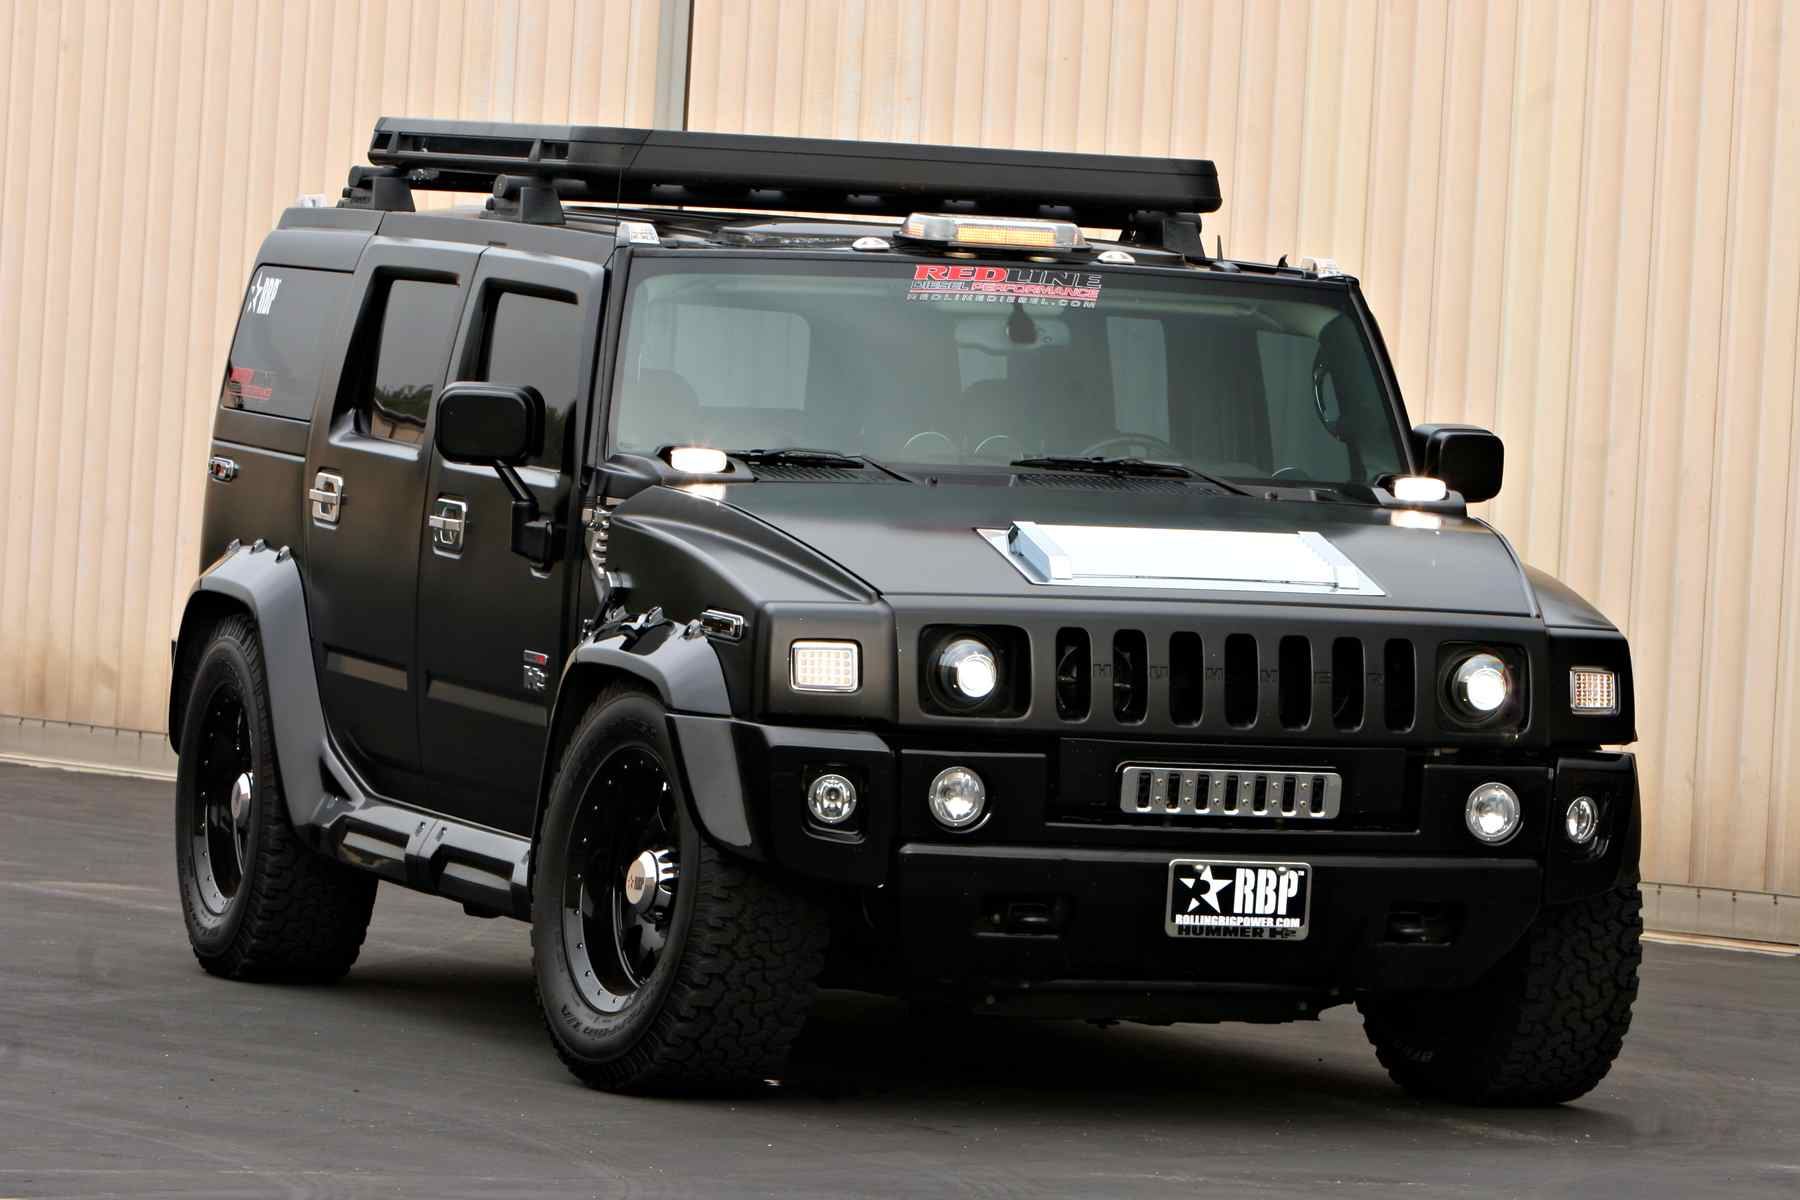 Hummer H3 Wallpaper Free For Computer